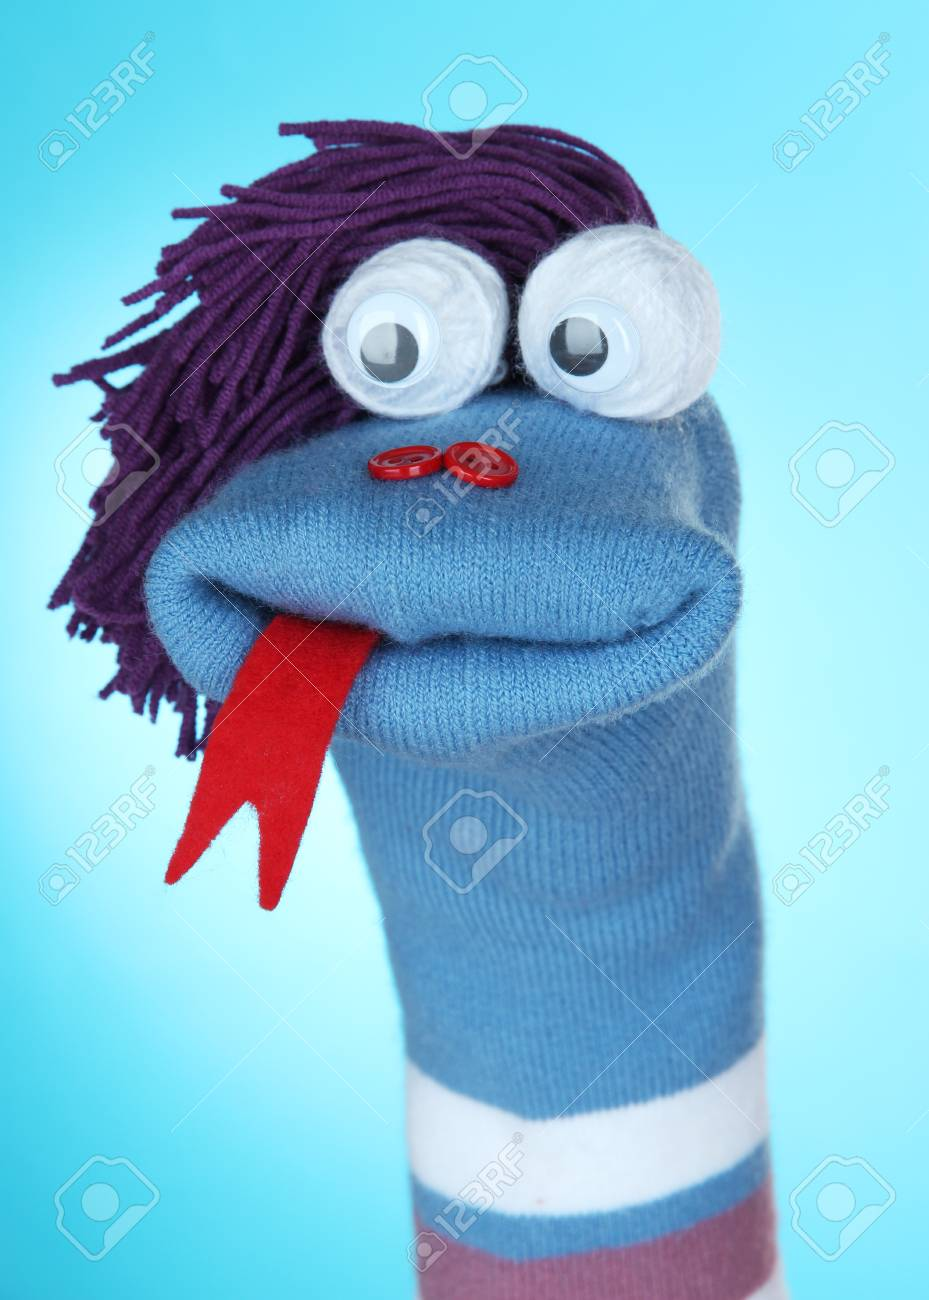 Blue Sock Puppet : puppet, Puppet, Stock, Photo,, Picture, Royalty, Image., Image, 23243448.